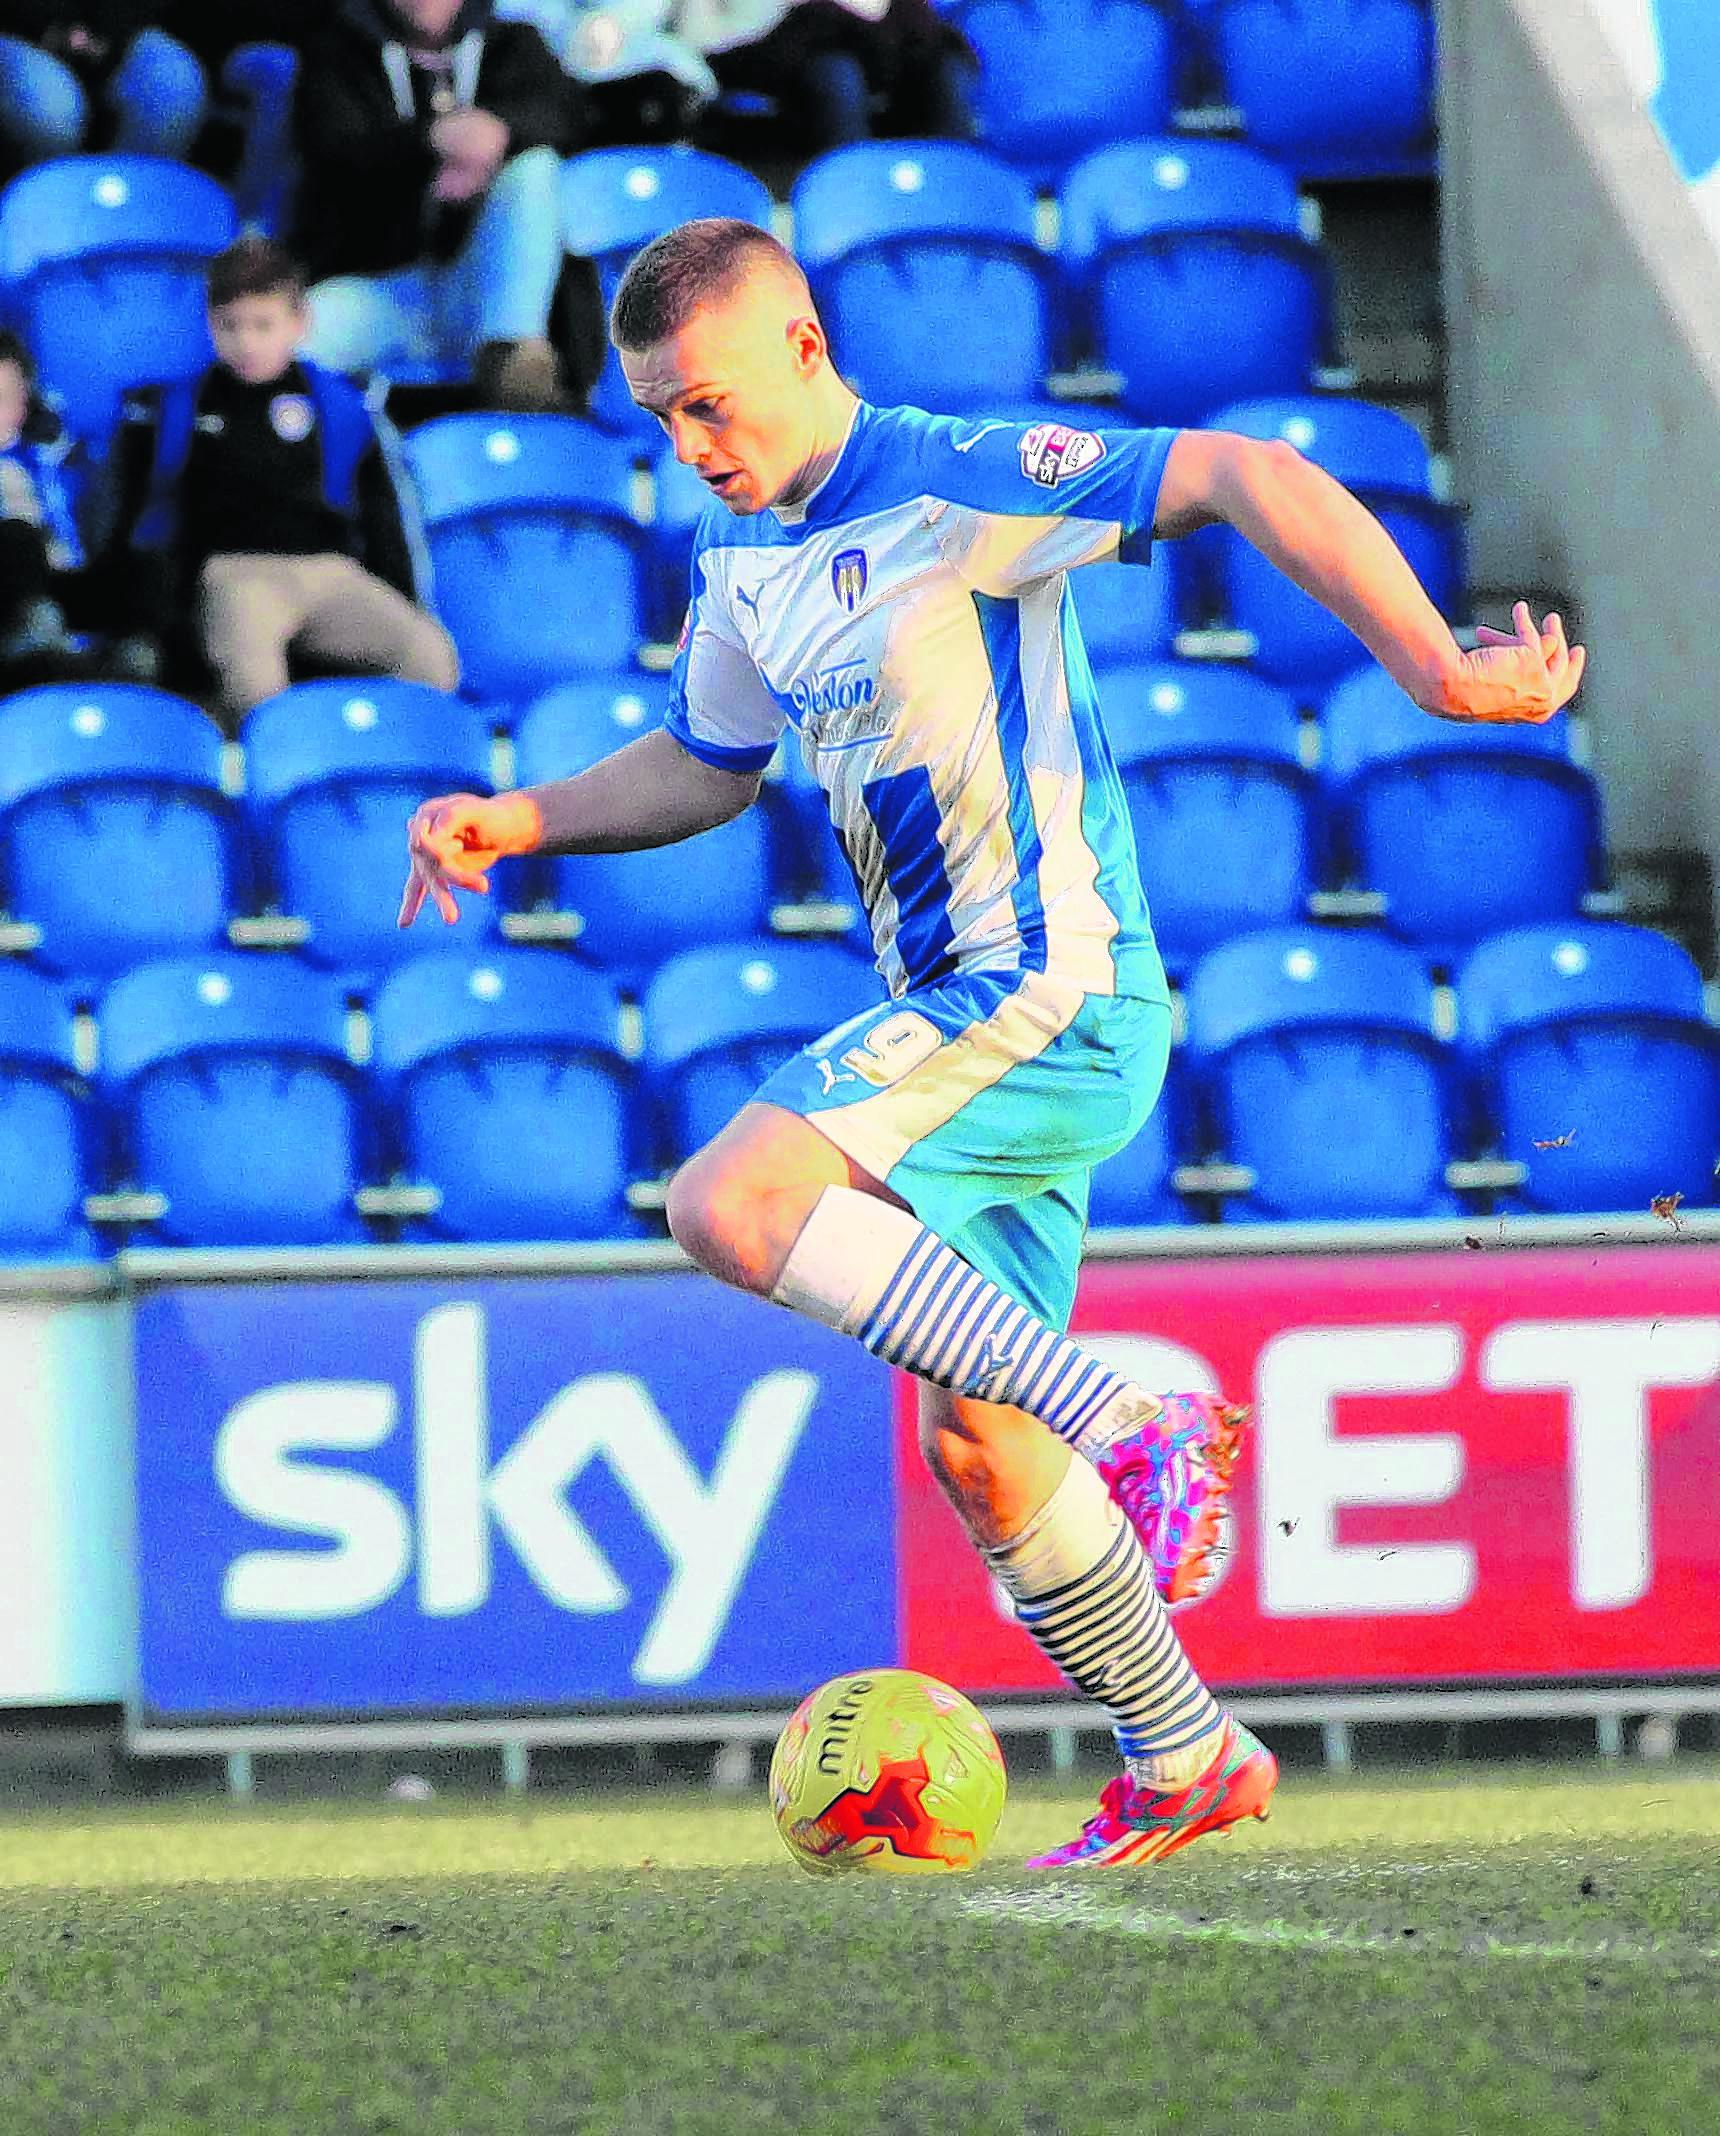 Farewell - Rhys Healey's loan spell at Colchester United has ended after he was recalled by parent club Cardiff City.